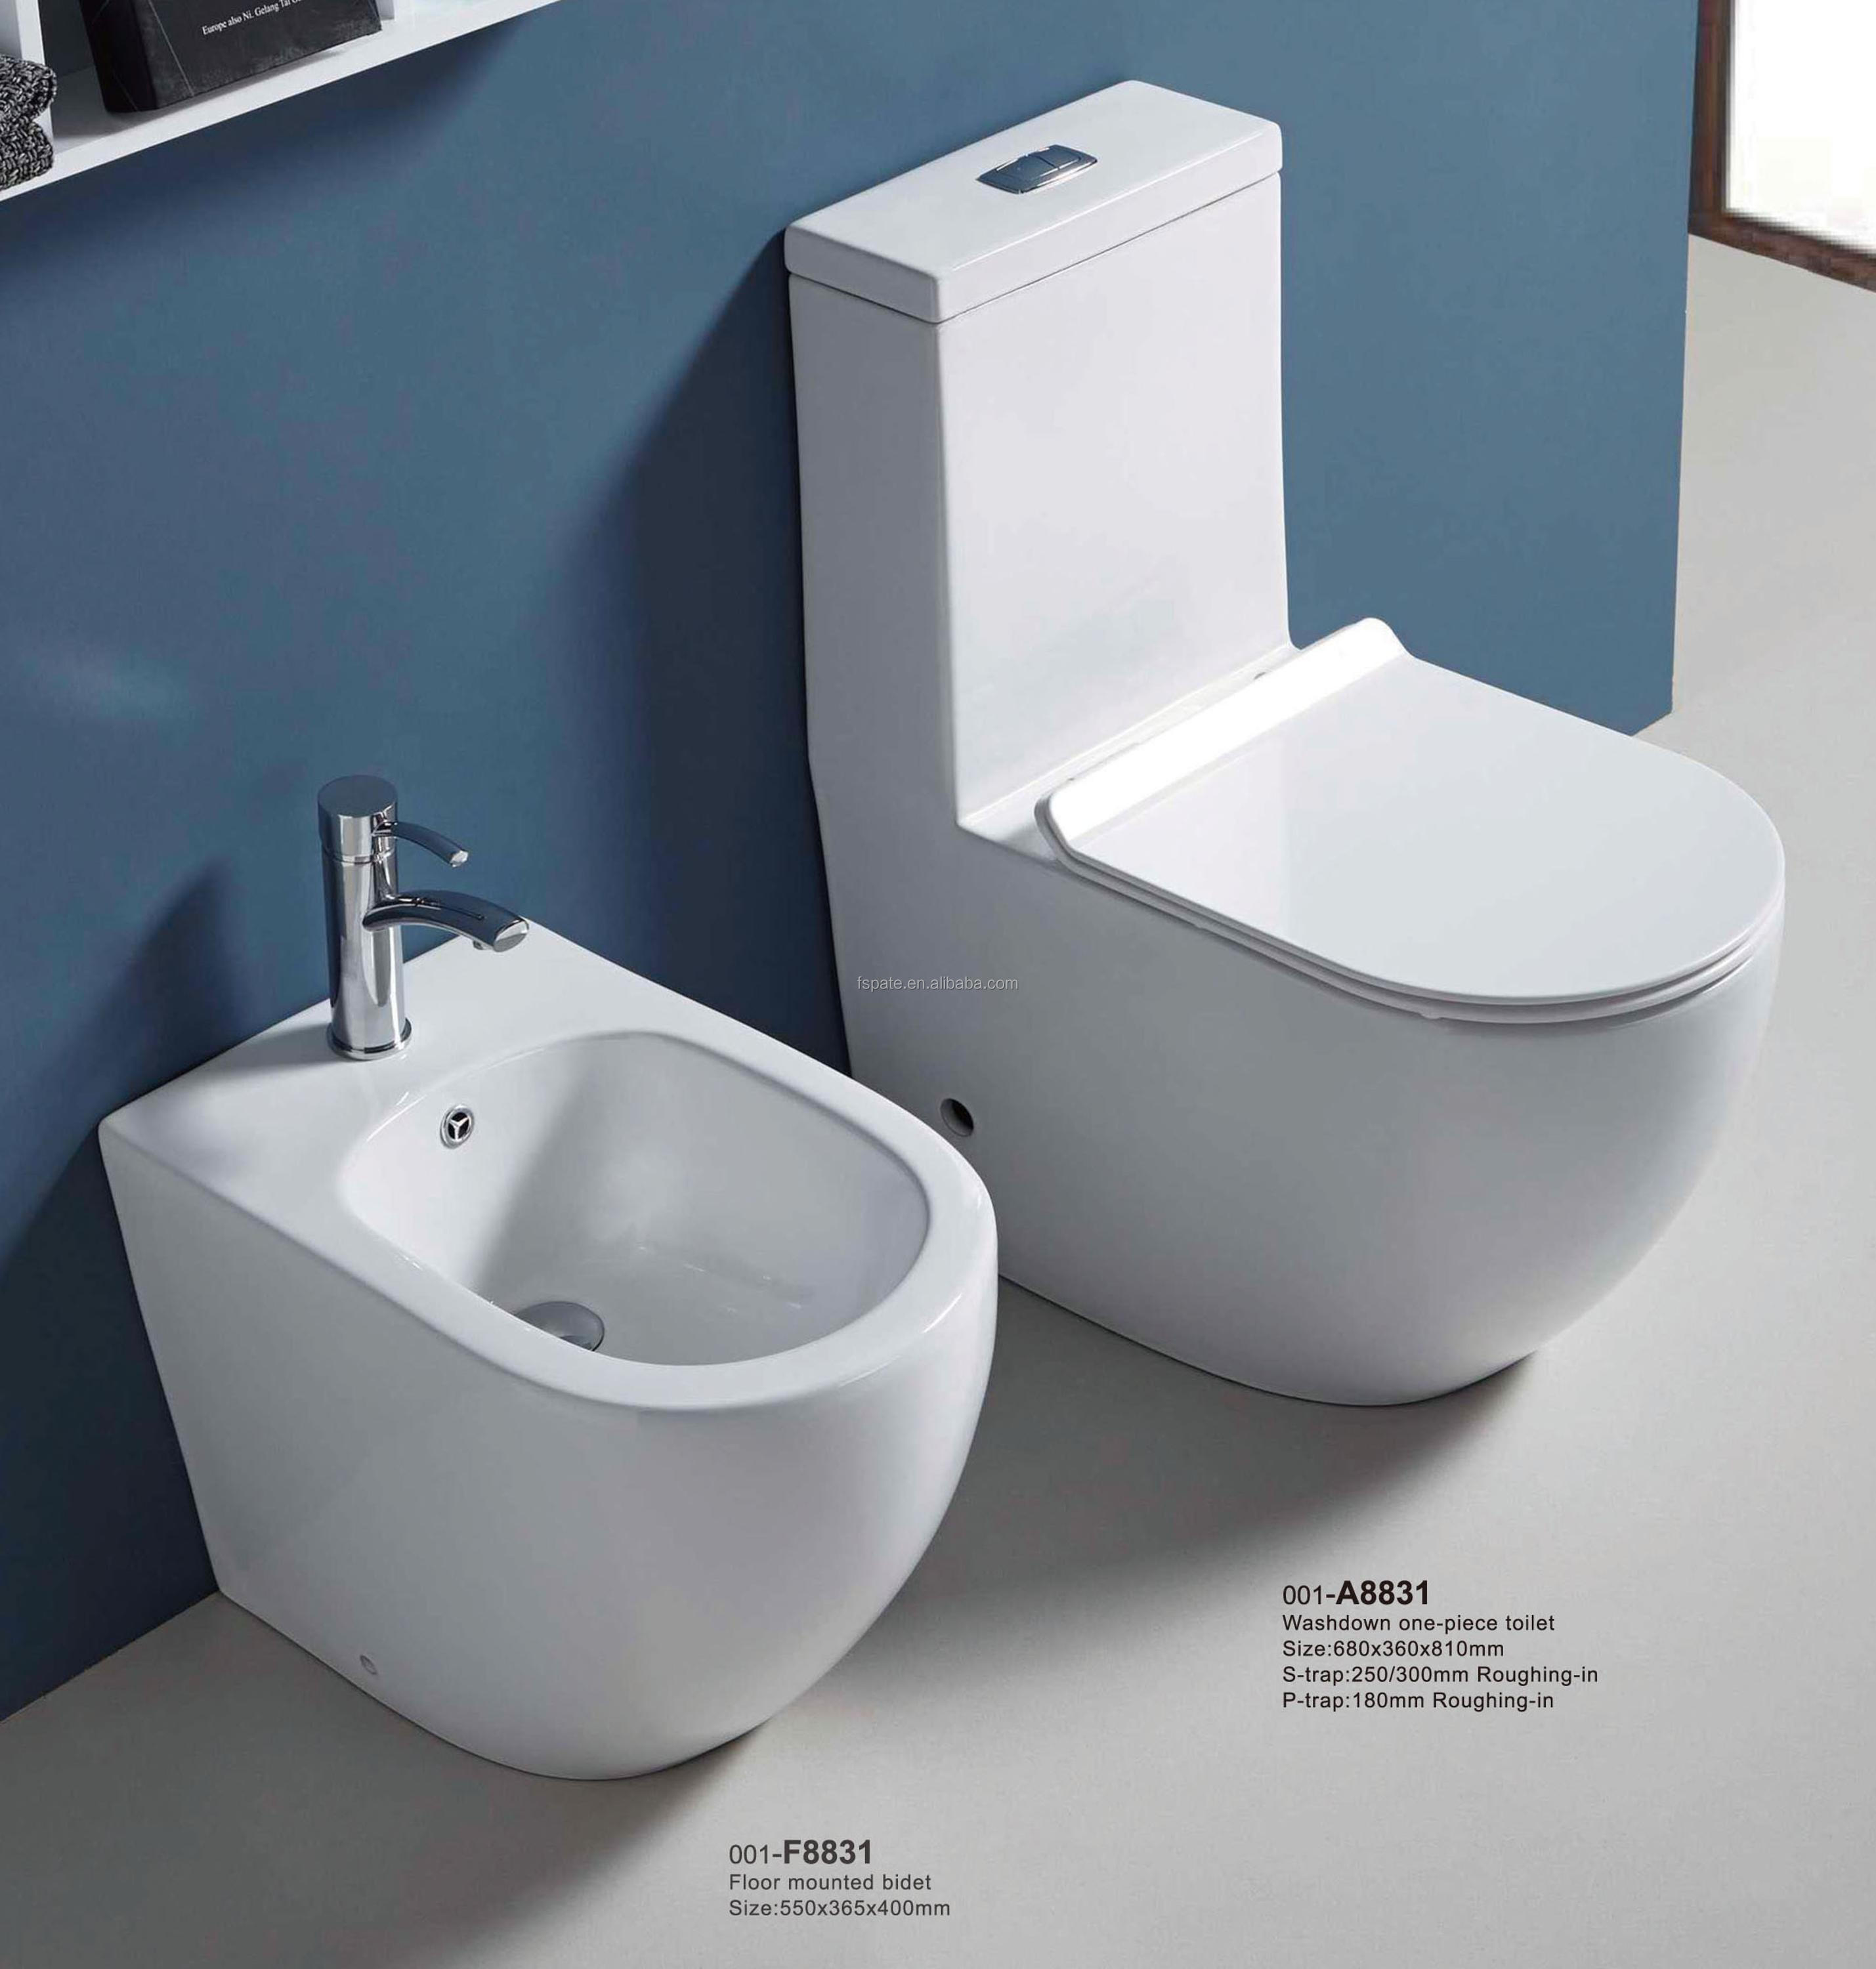 design conform decor uspa seat impressively warm by advanced toilet the inviting bio and to sure your products attractive s is divine bathroom bidet easily ub